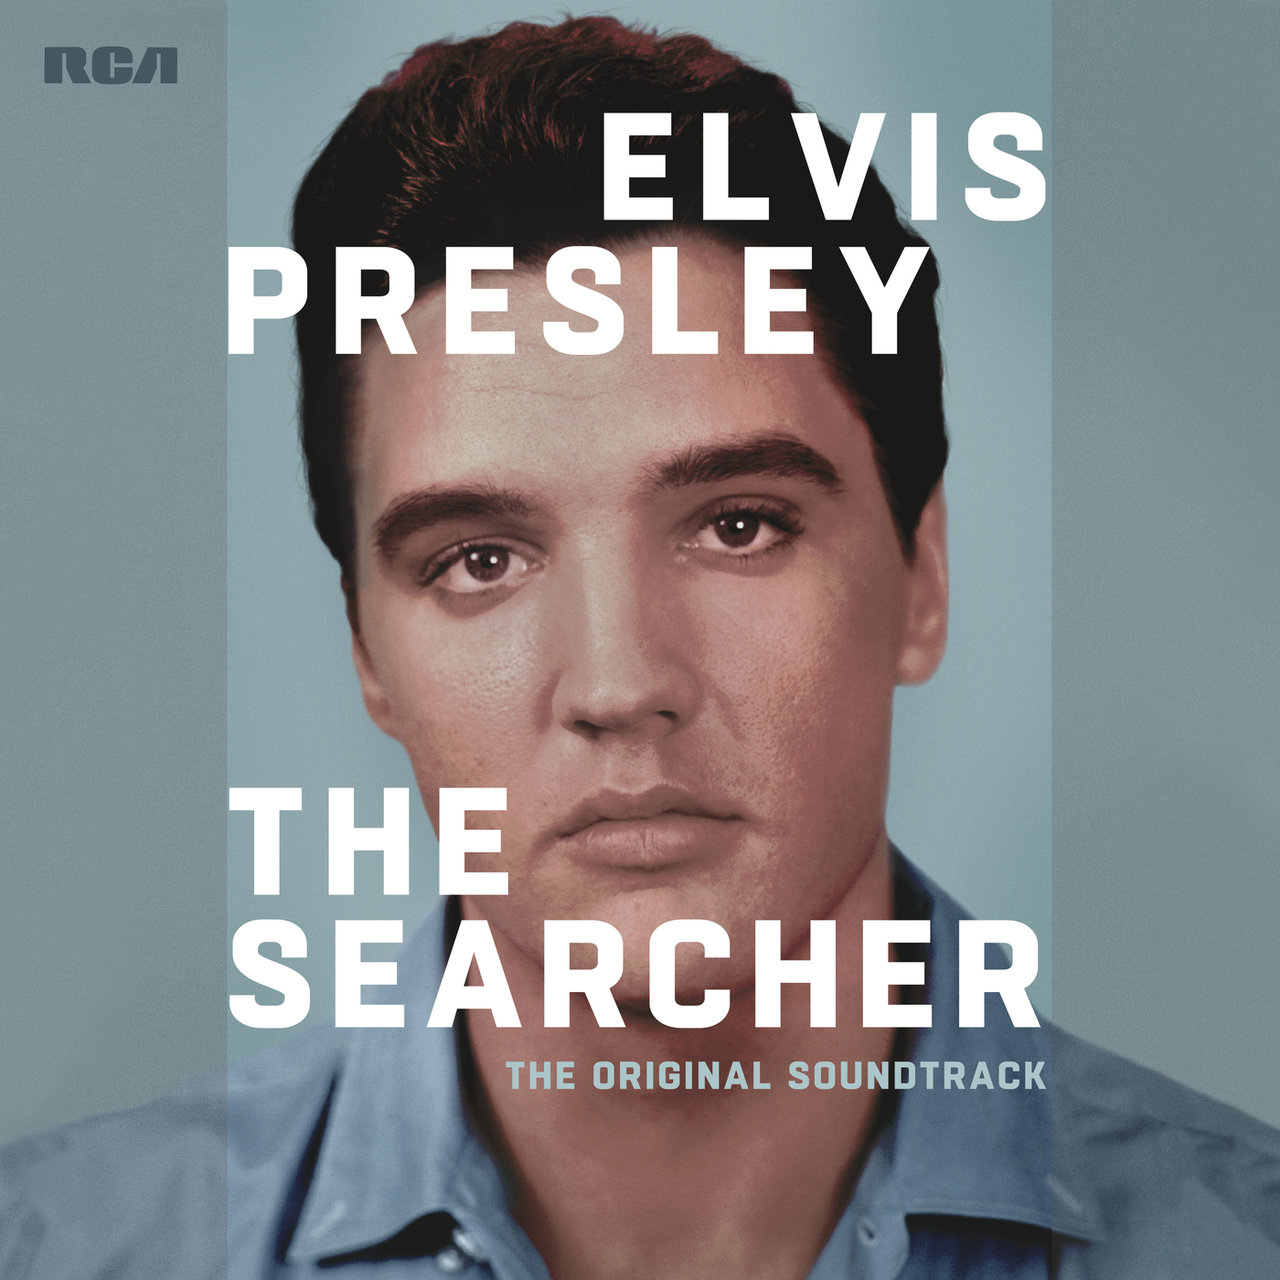 Elvis Presley: The Searcher (The Original Soundtrack)